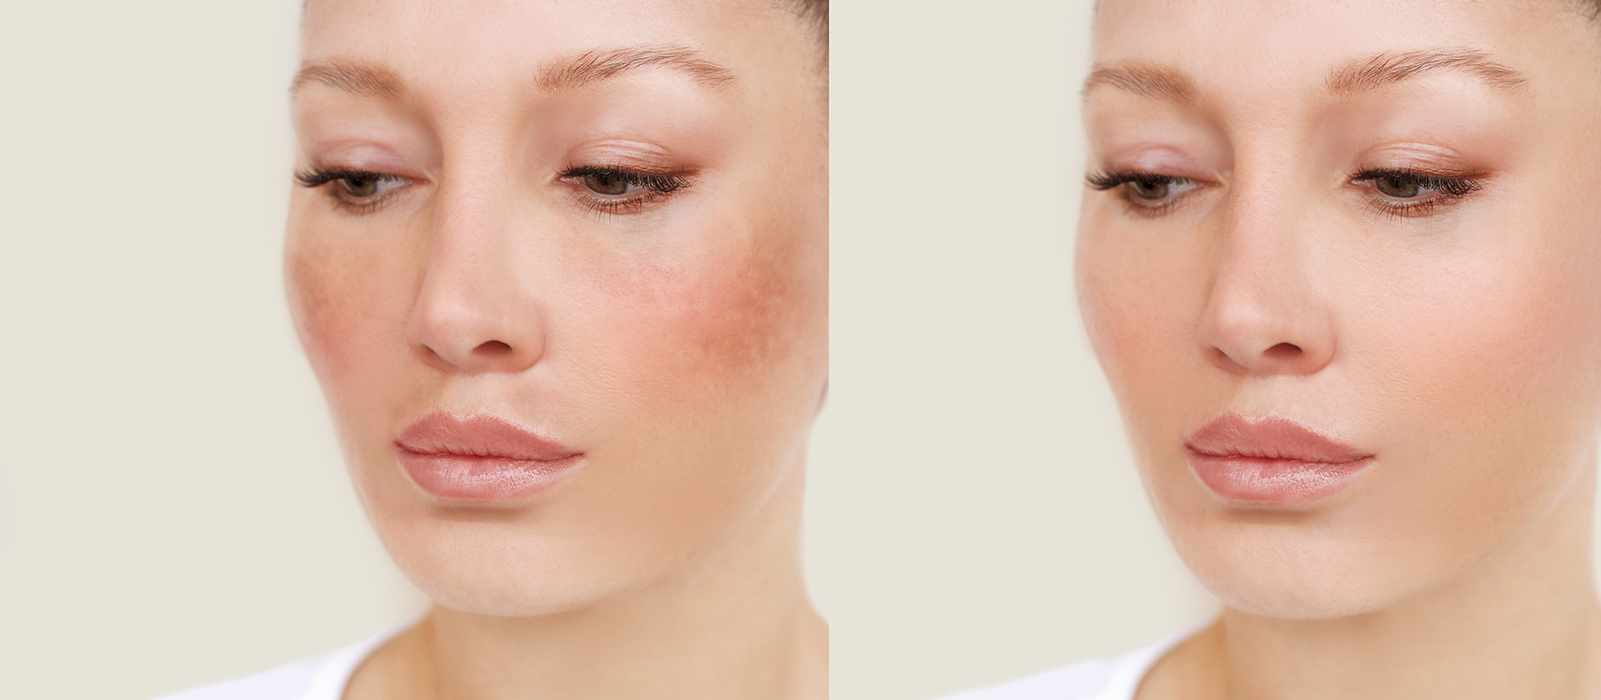 skin discoloration patches